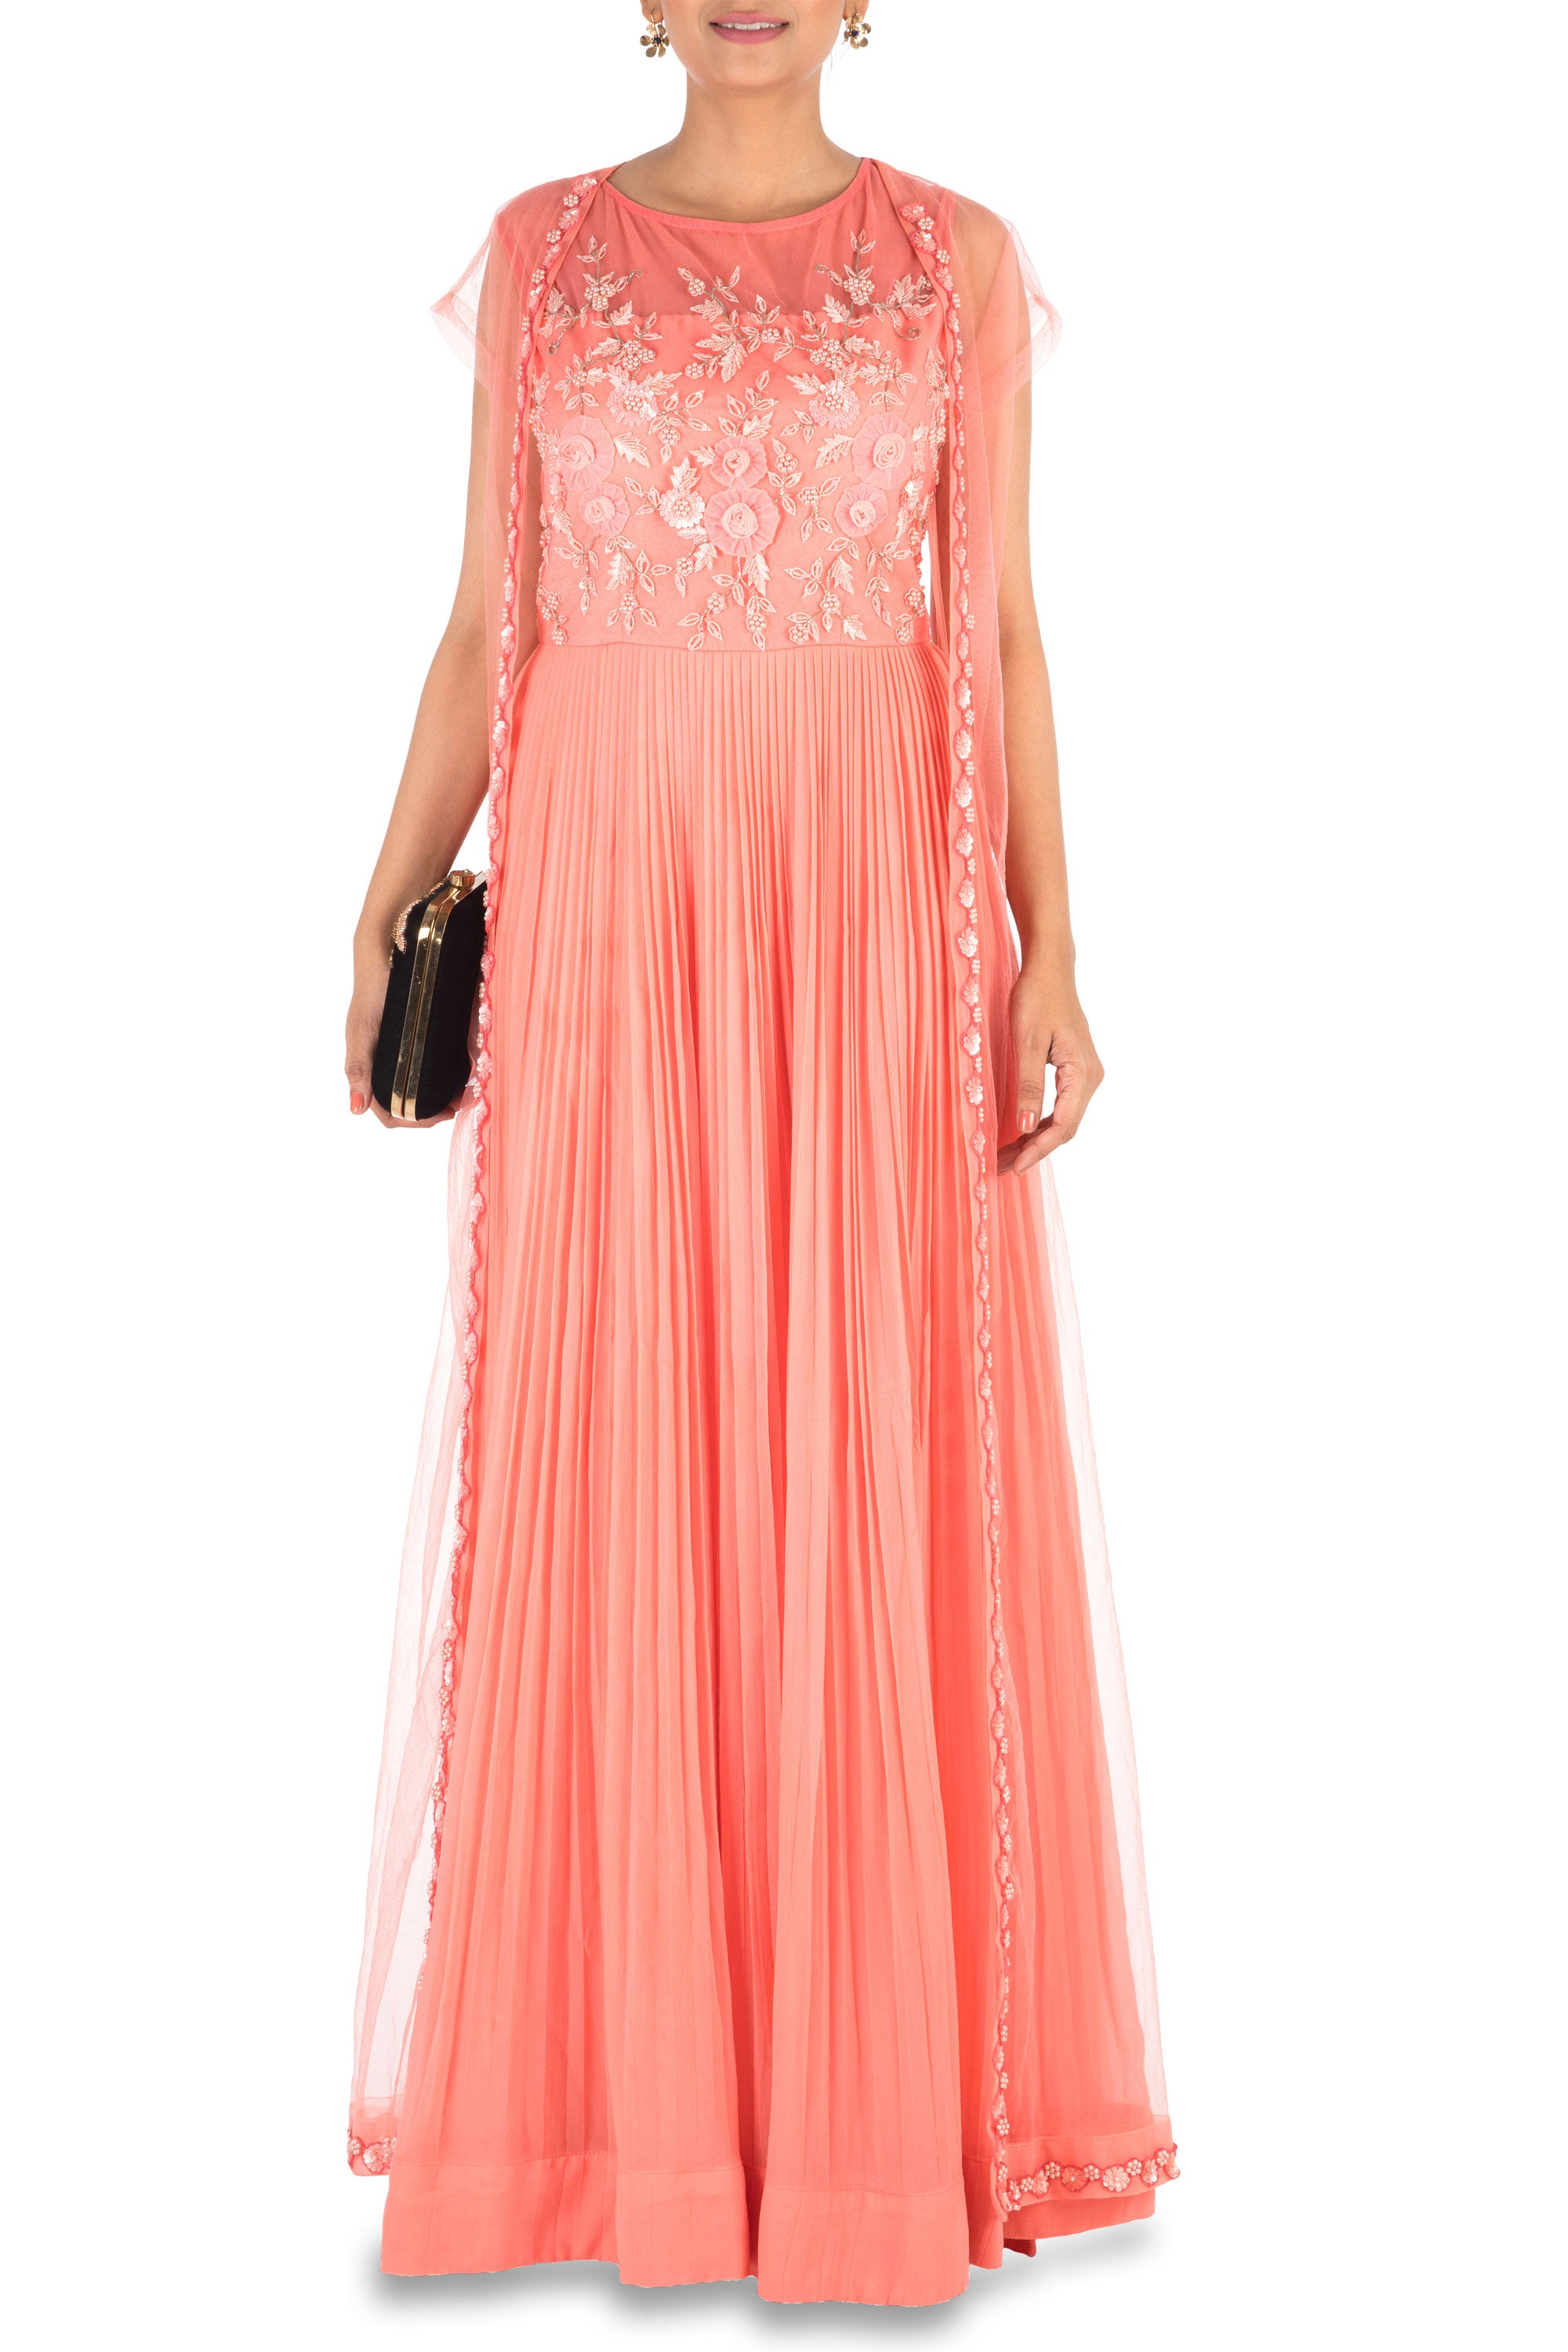 Hand Embroidered Coral Mirco Pleated Flare Gown With Jacket Front